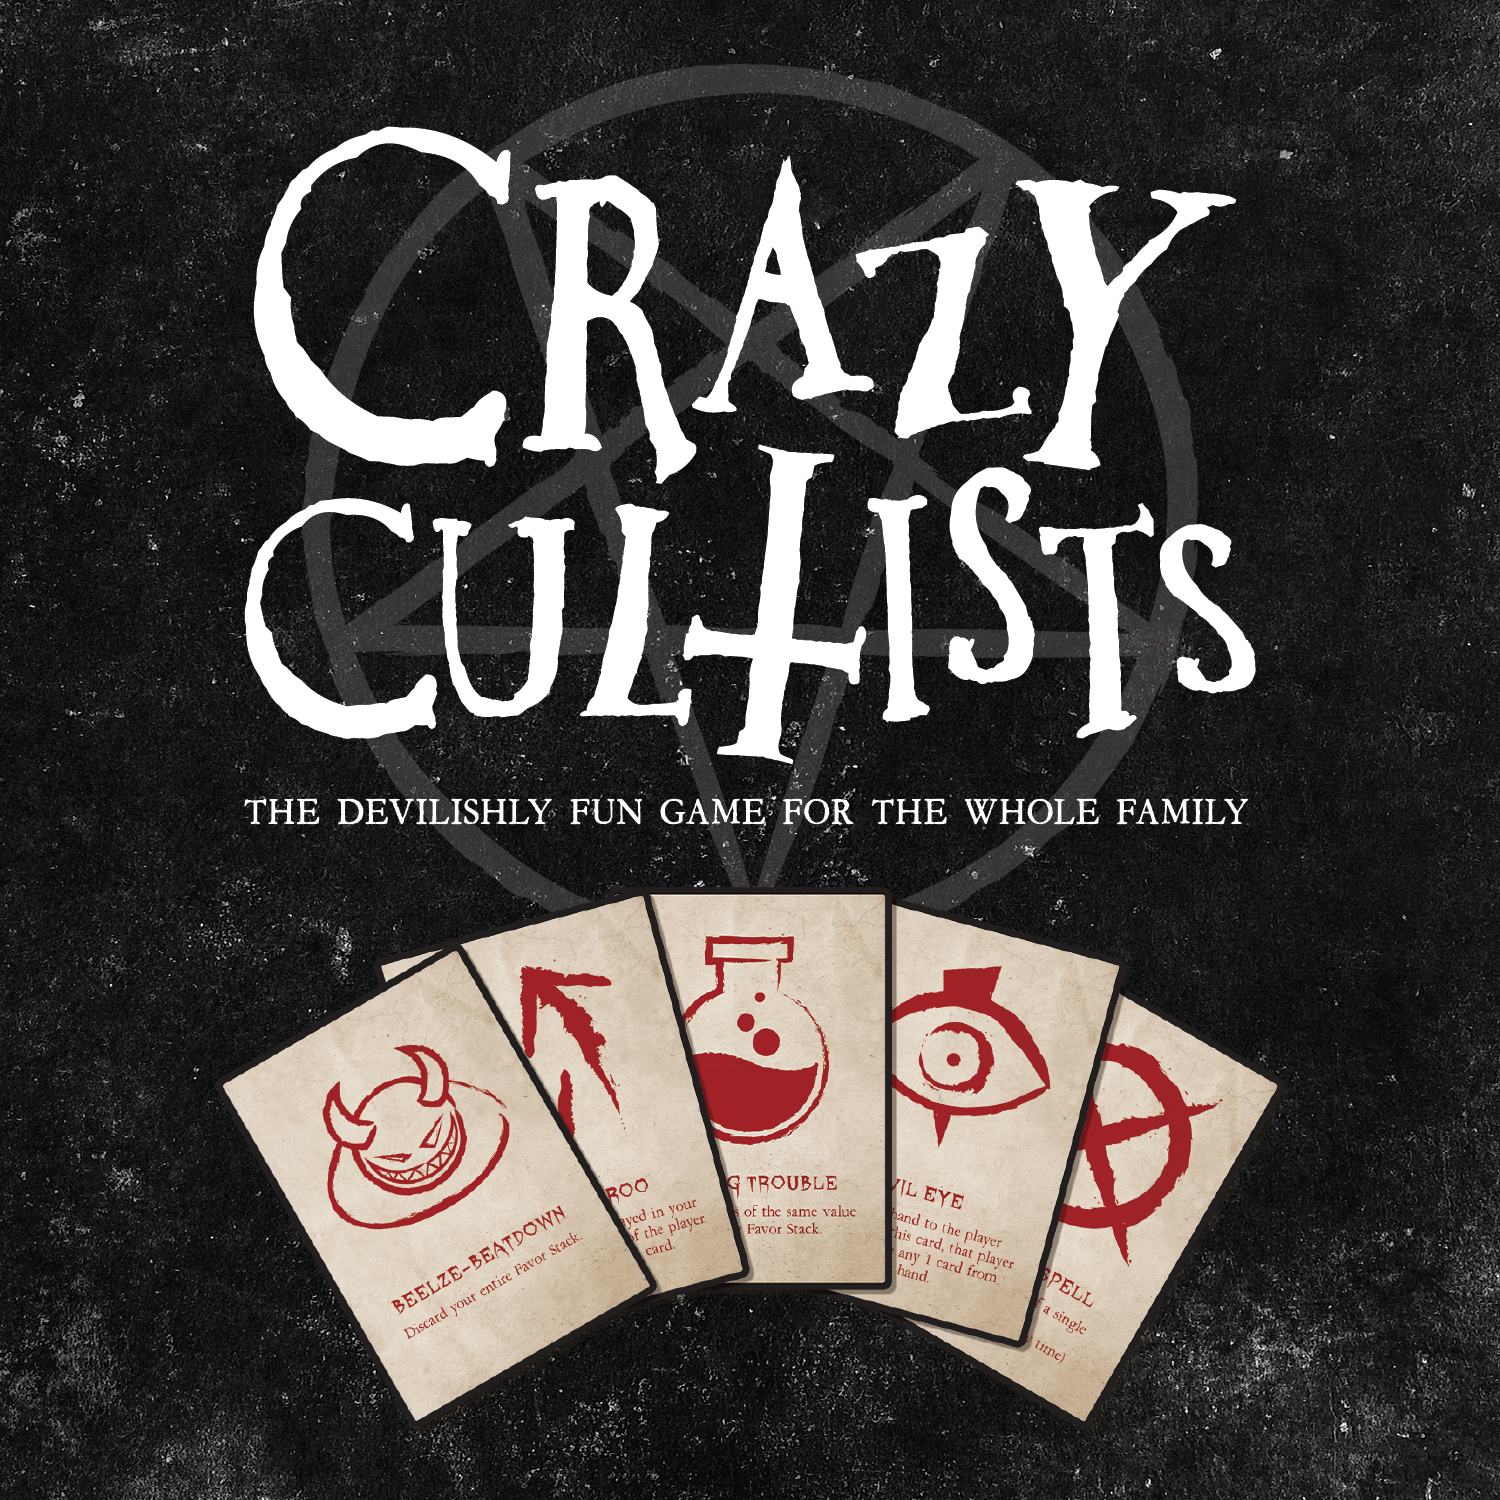 Crazy Cultists